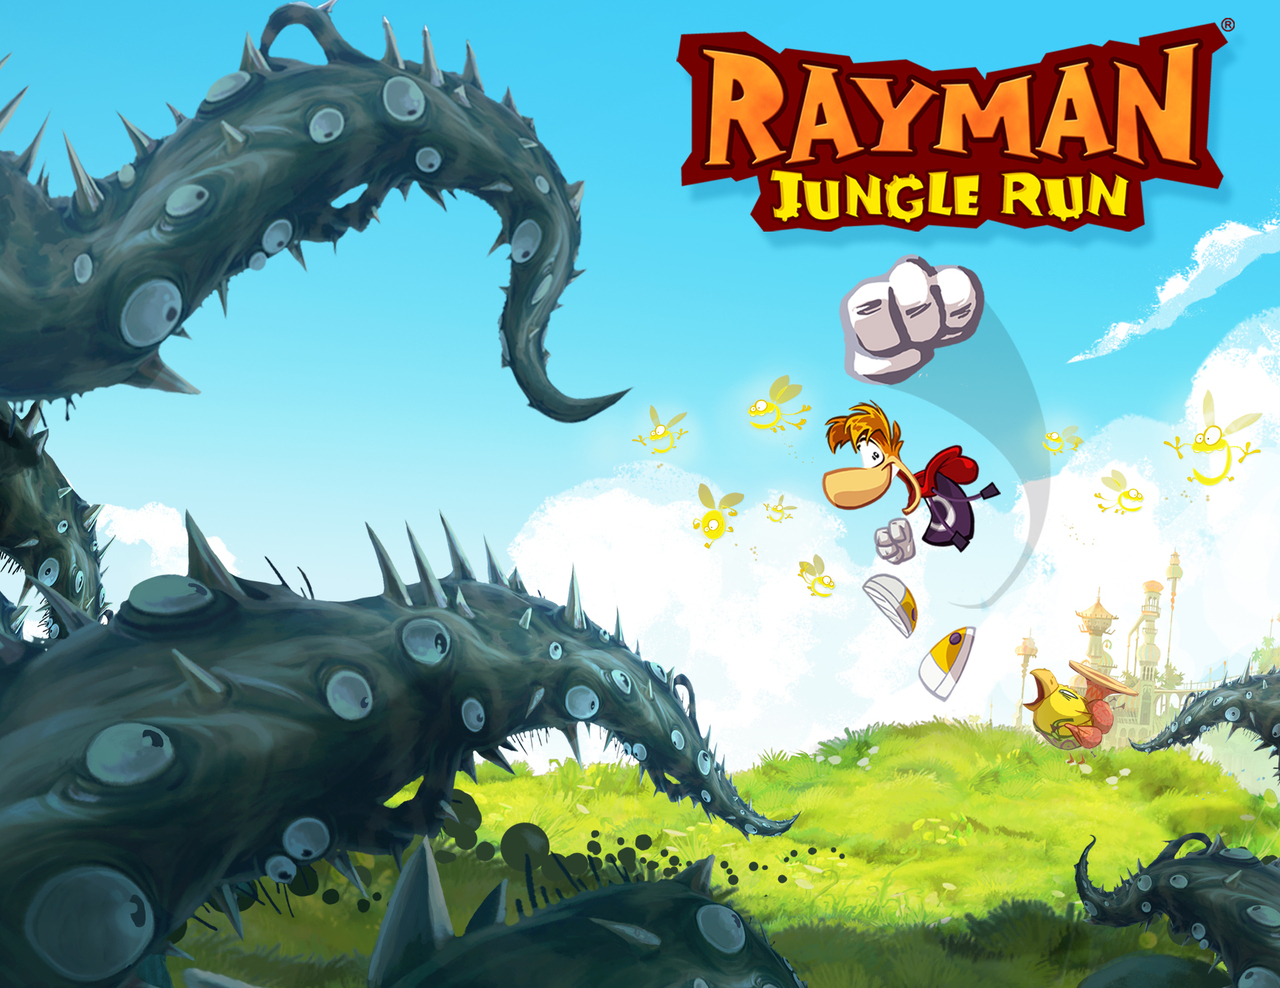 rayman-jungle-run-iphone-ipod-1346923760-004.jpg